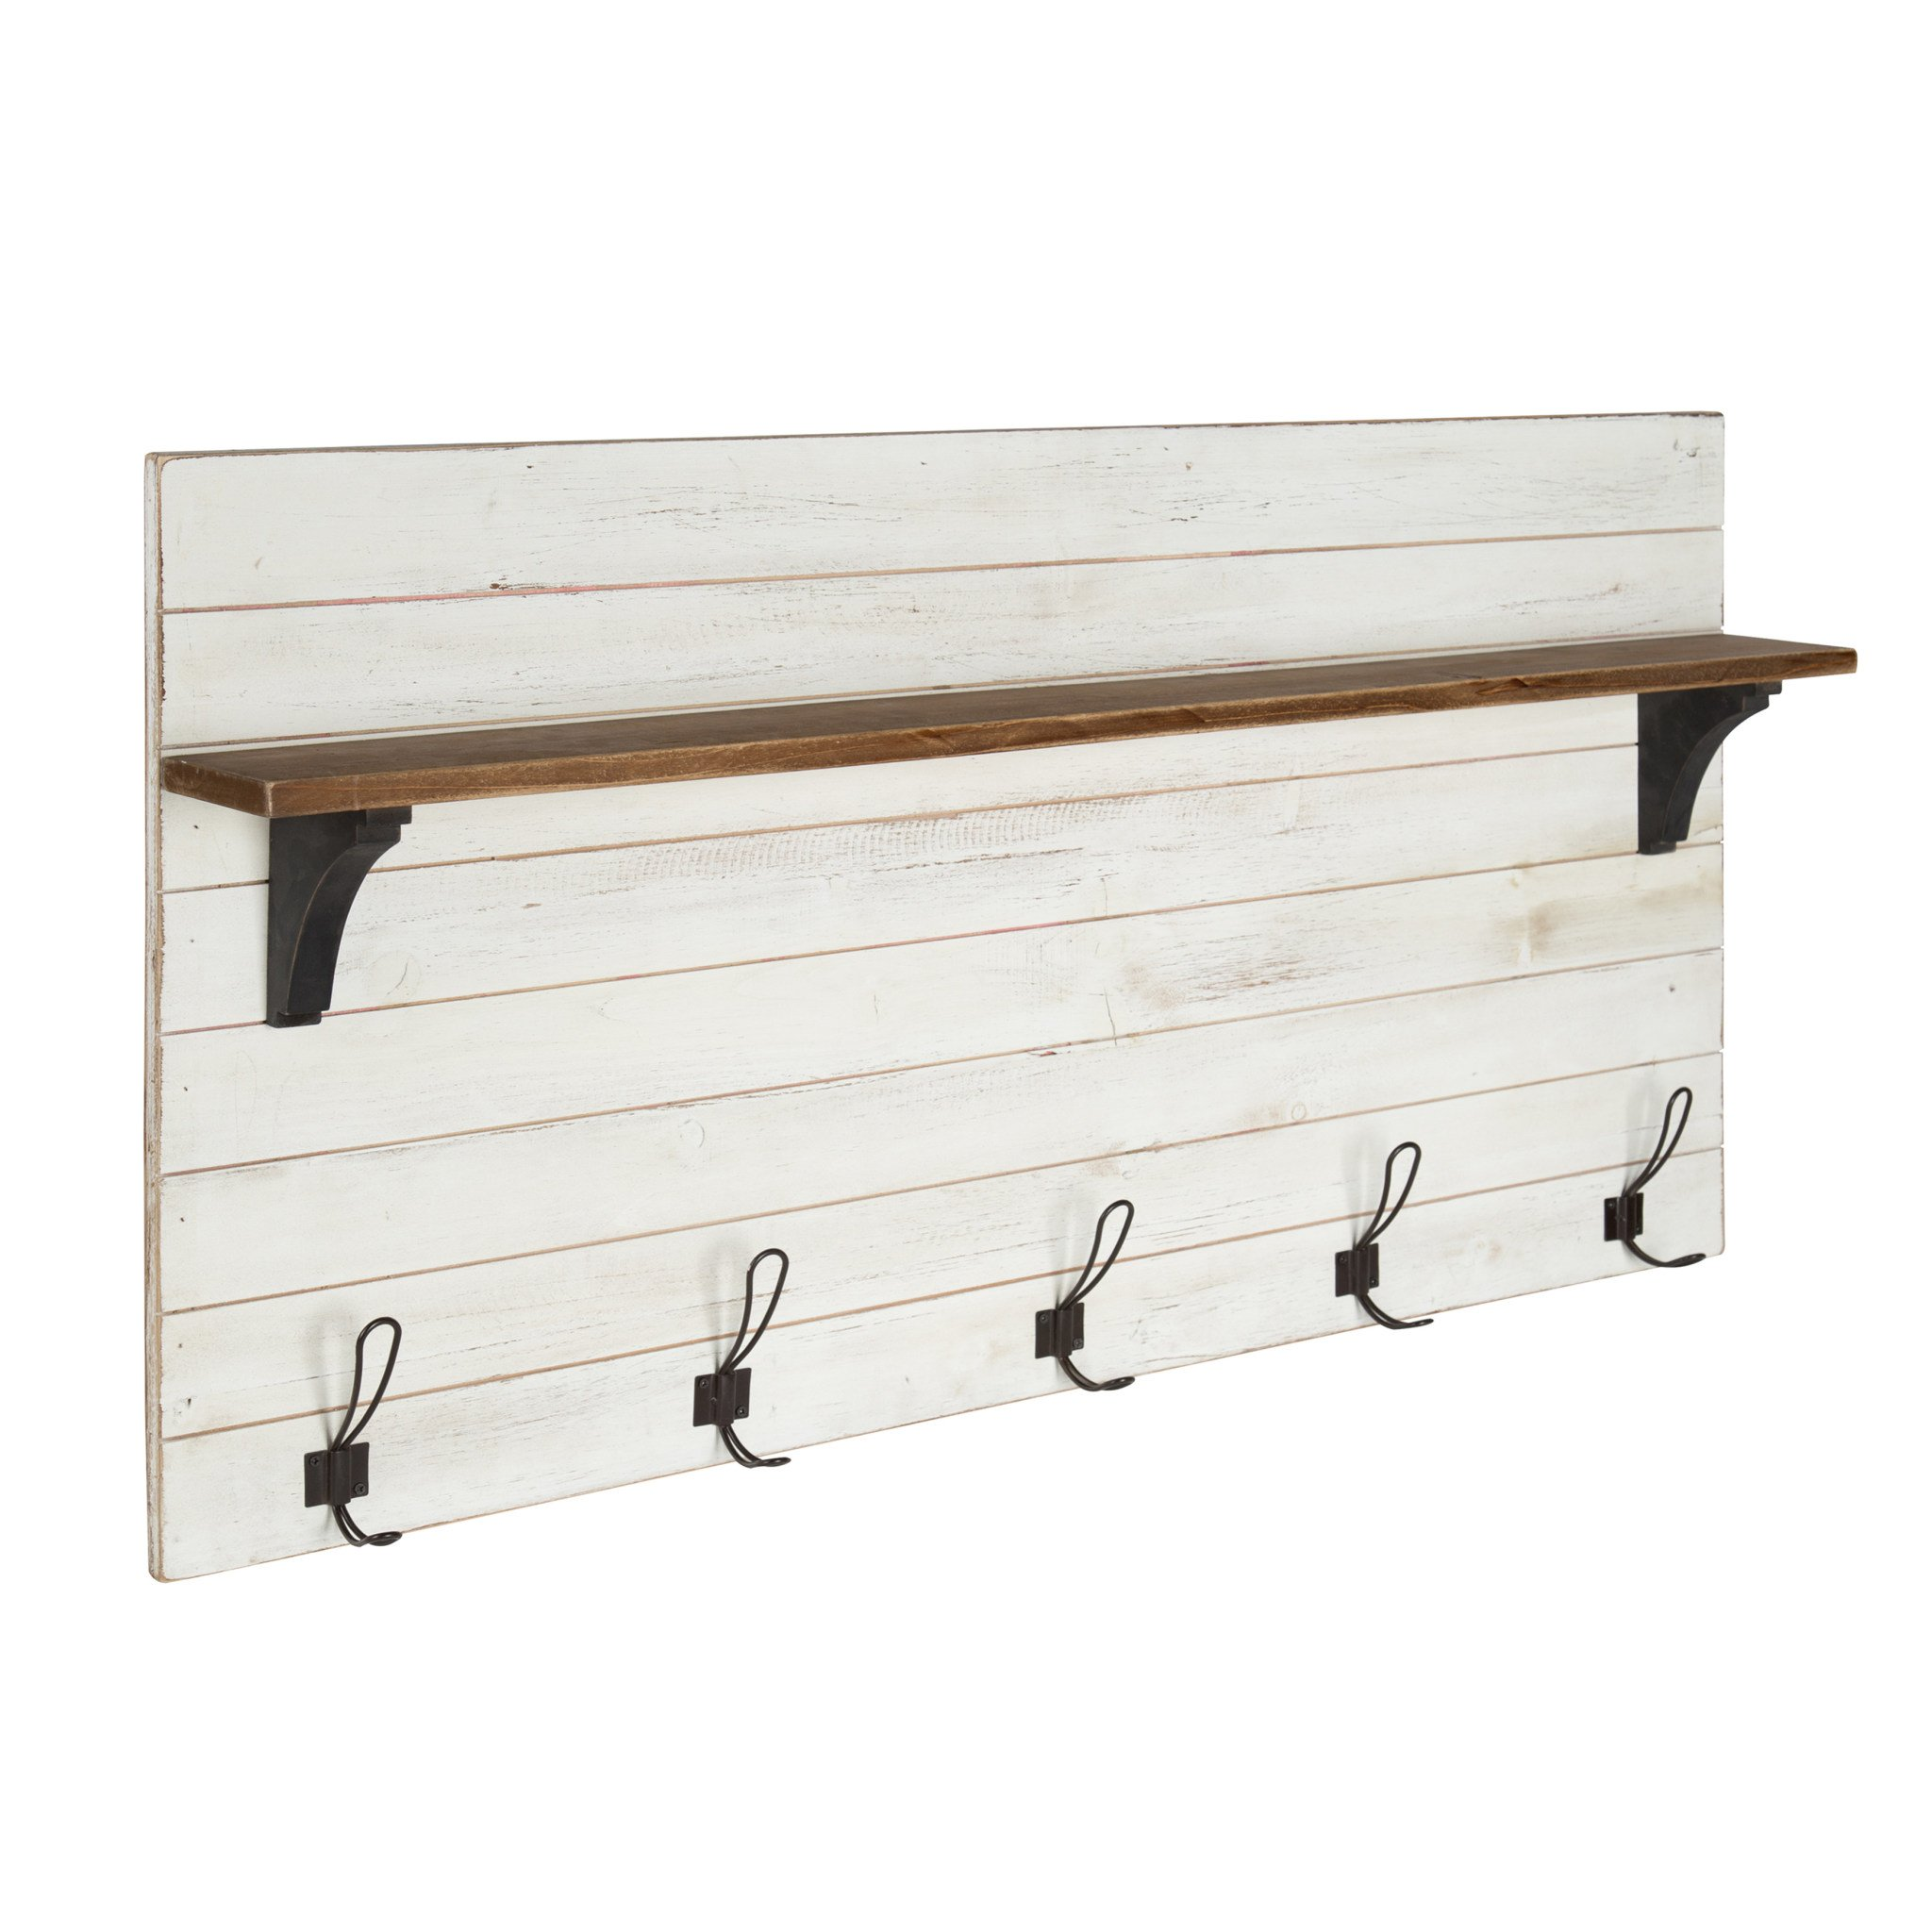 jeran wood wall shelf with hooks kateandlaurel white floating farmhouse diy bathroom shelves decorative liner hanging desk drawer reclaimed barn table open pantry shelving ikea